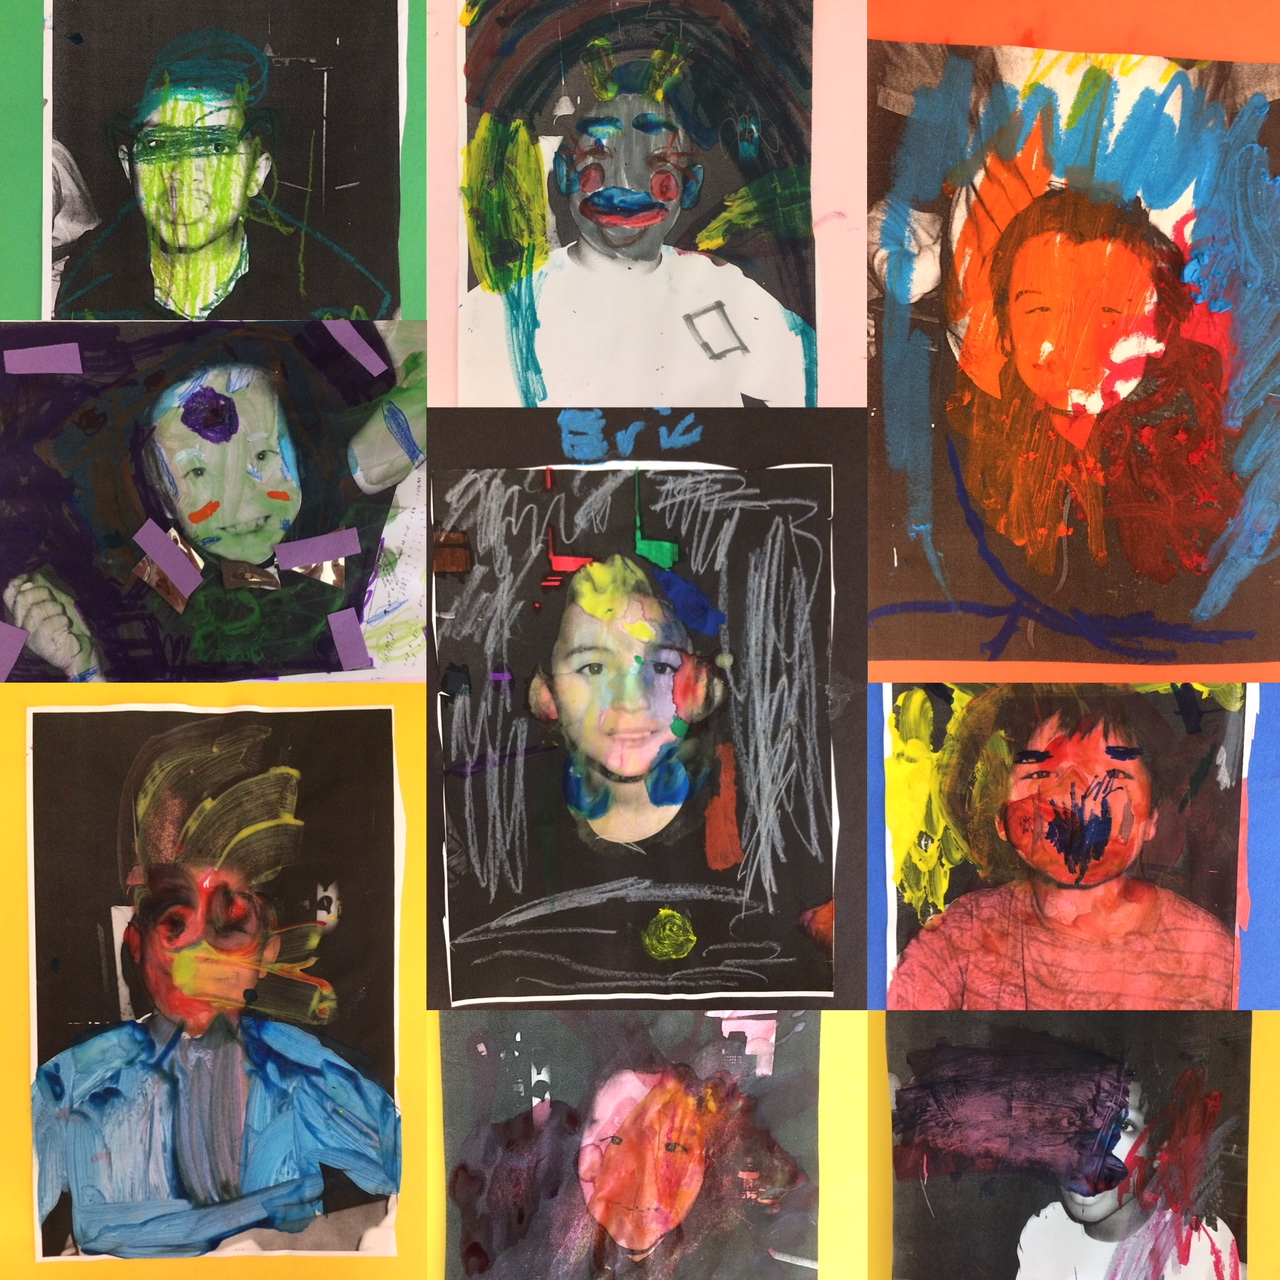 Collage of self-portraits of young children, made with black and white photos decorated with bright colors